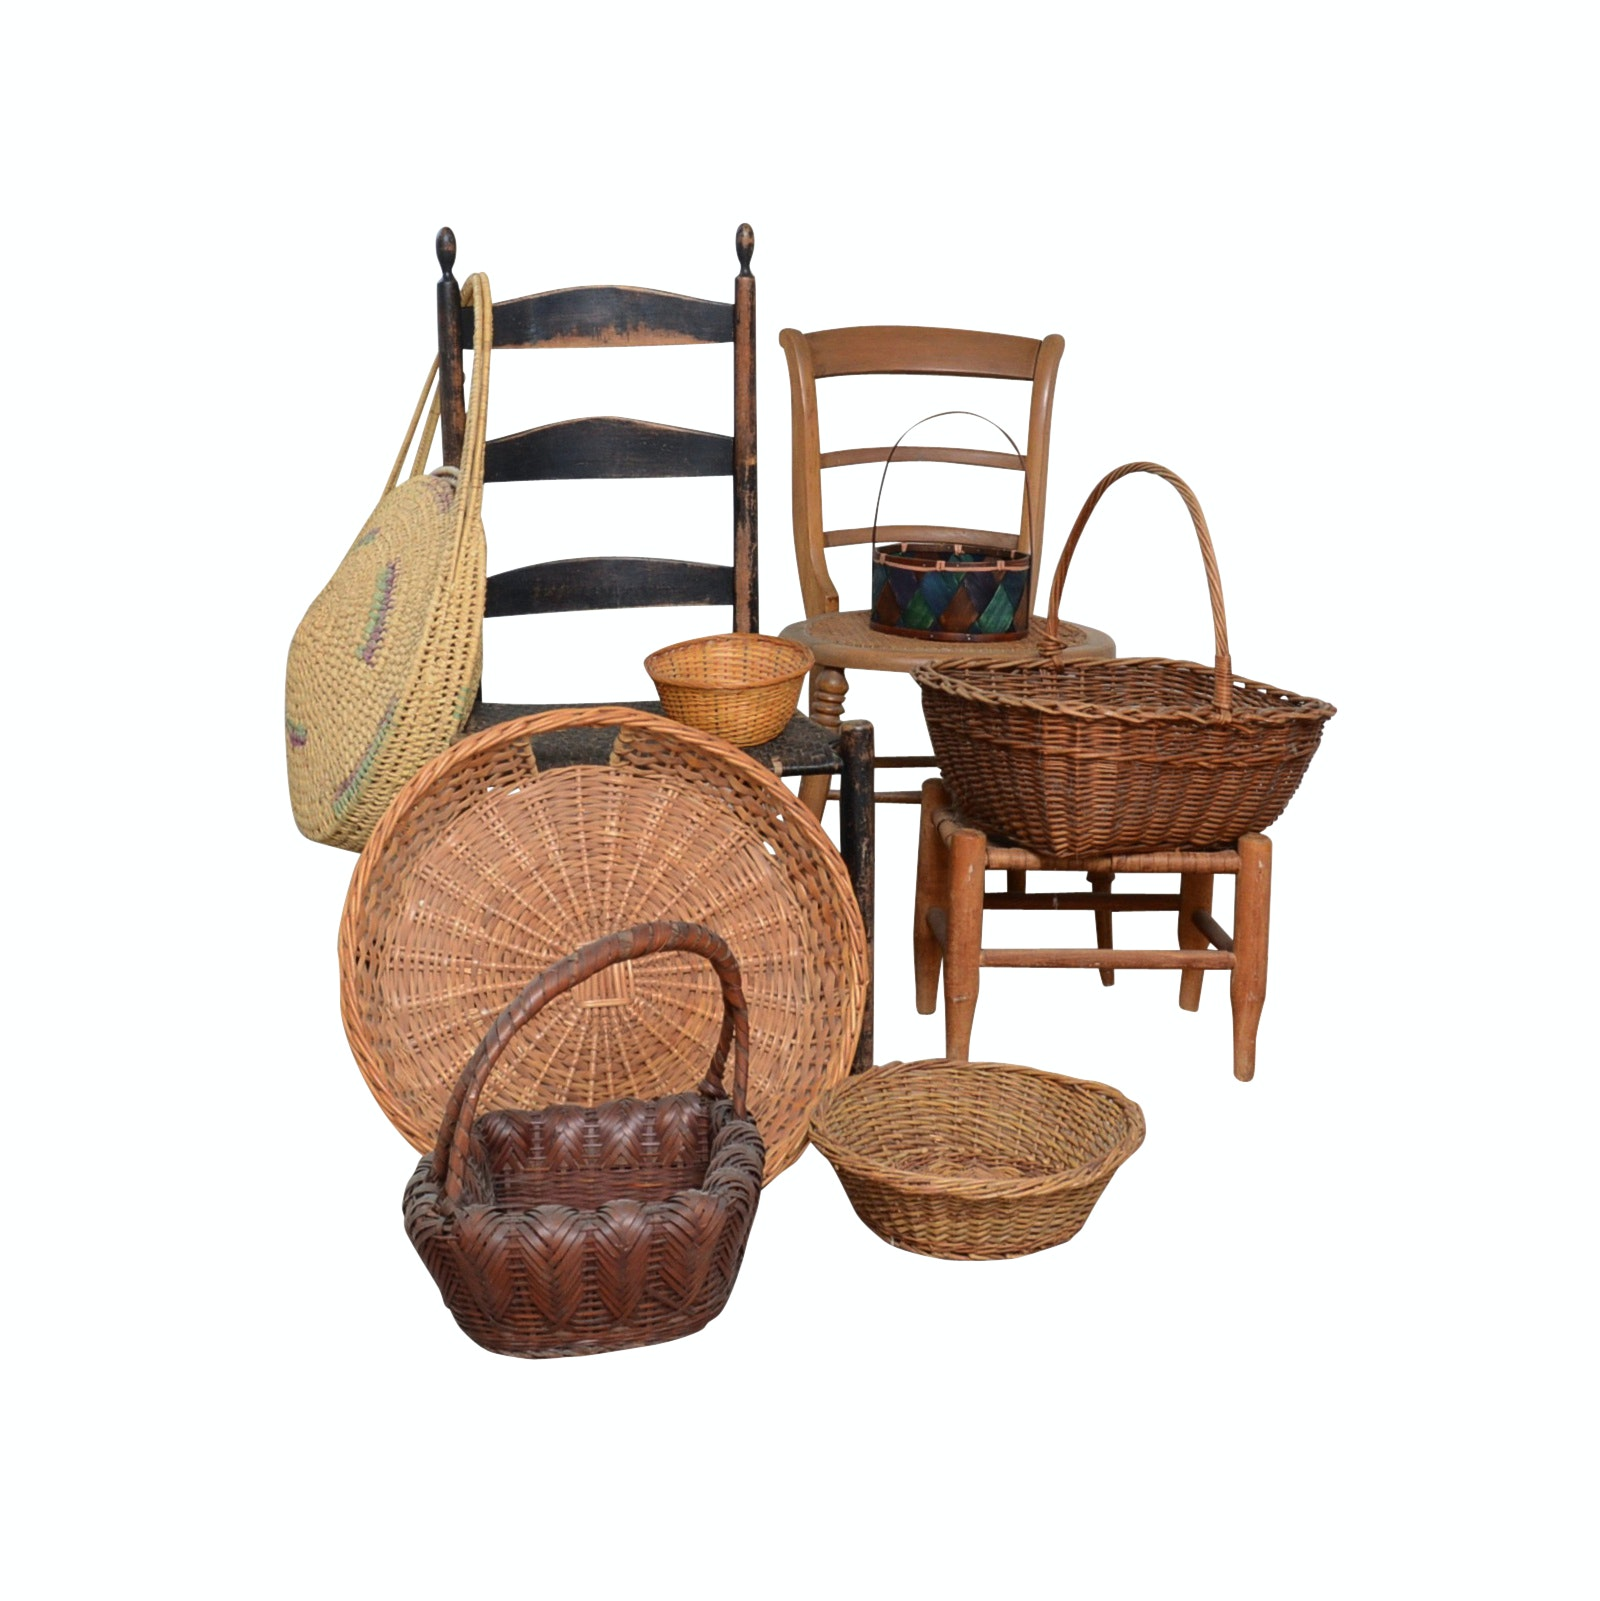 Wooden Side Chairs with Woven Seats and Collection of Baskets